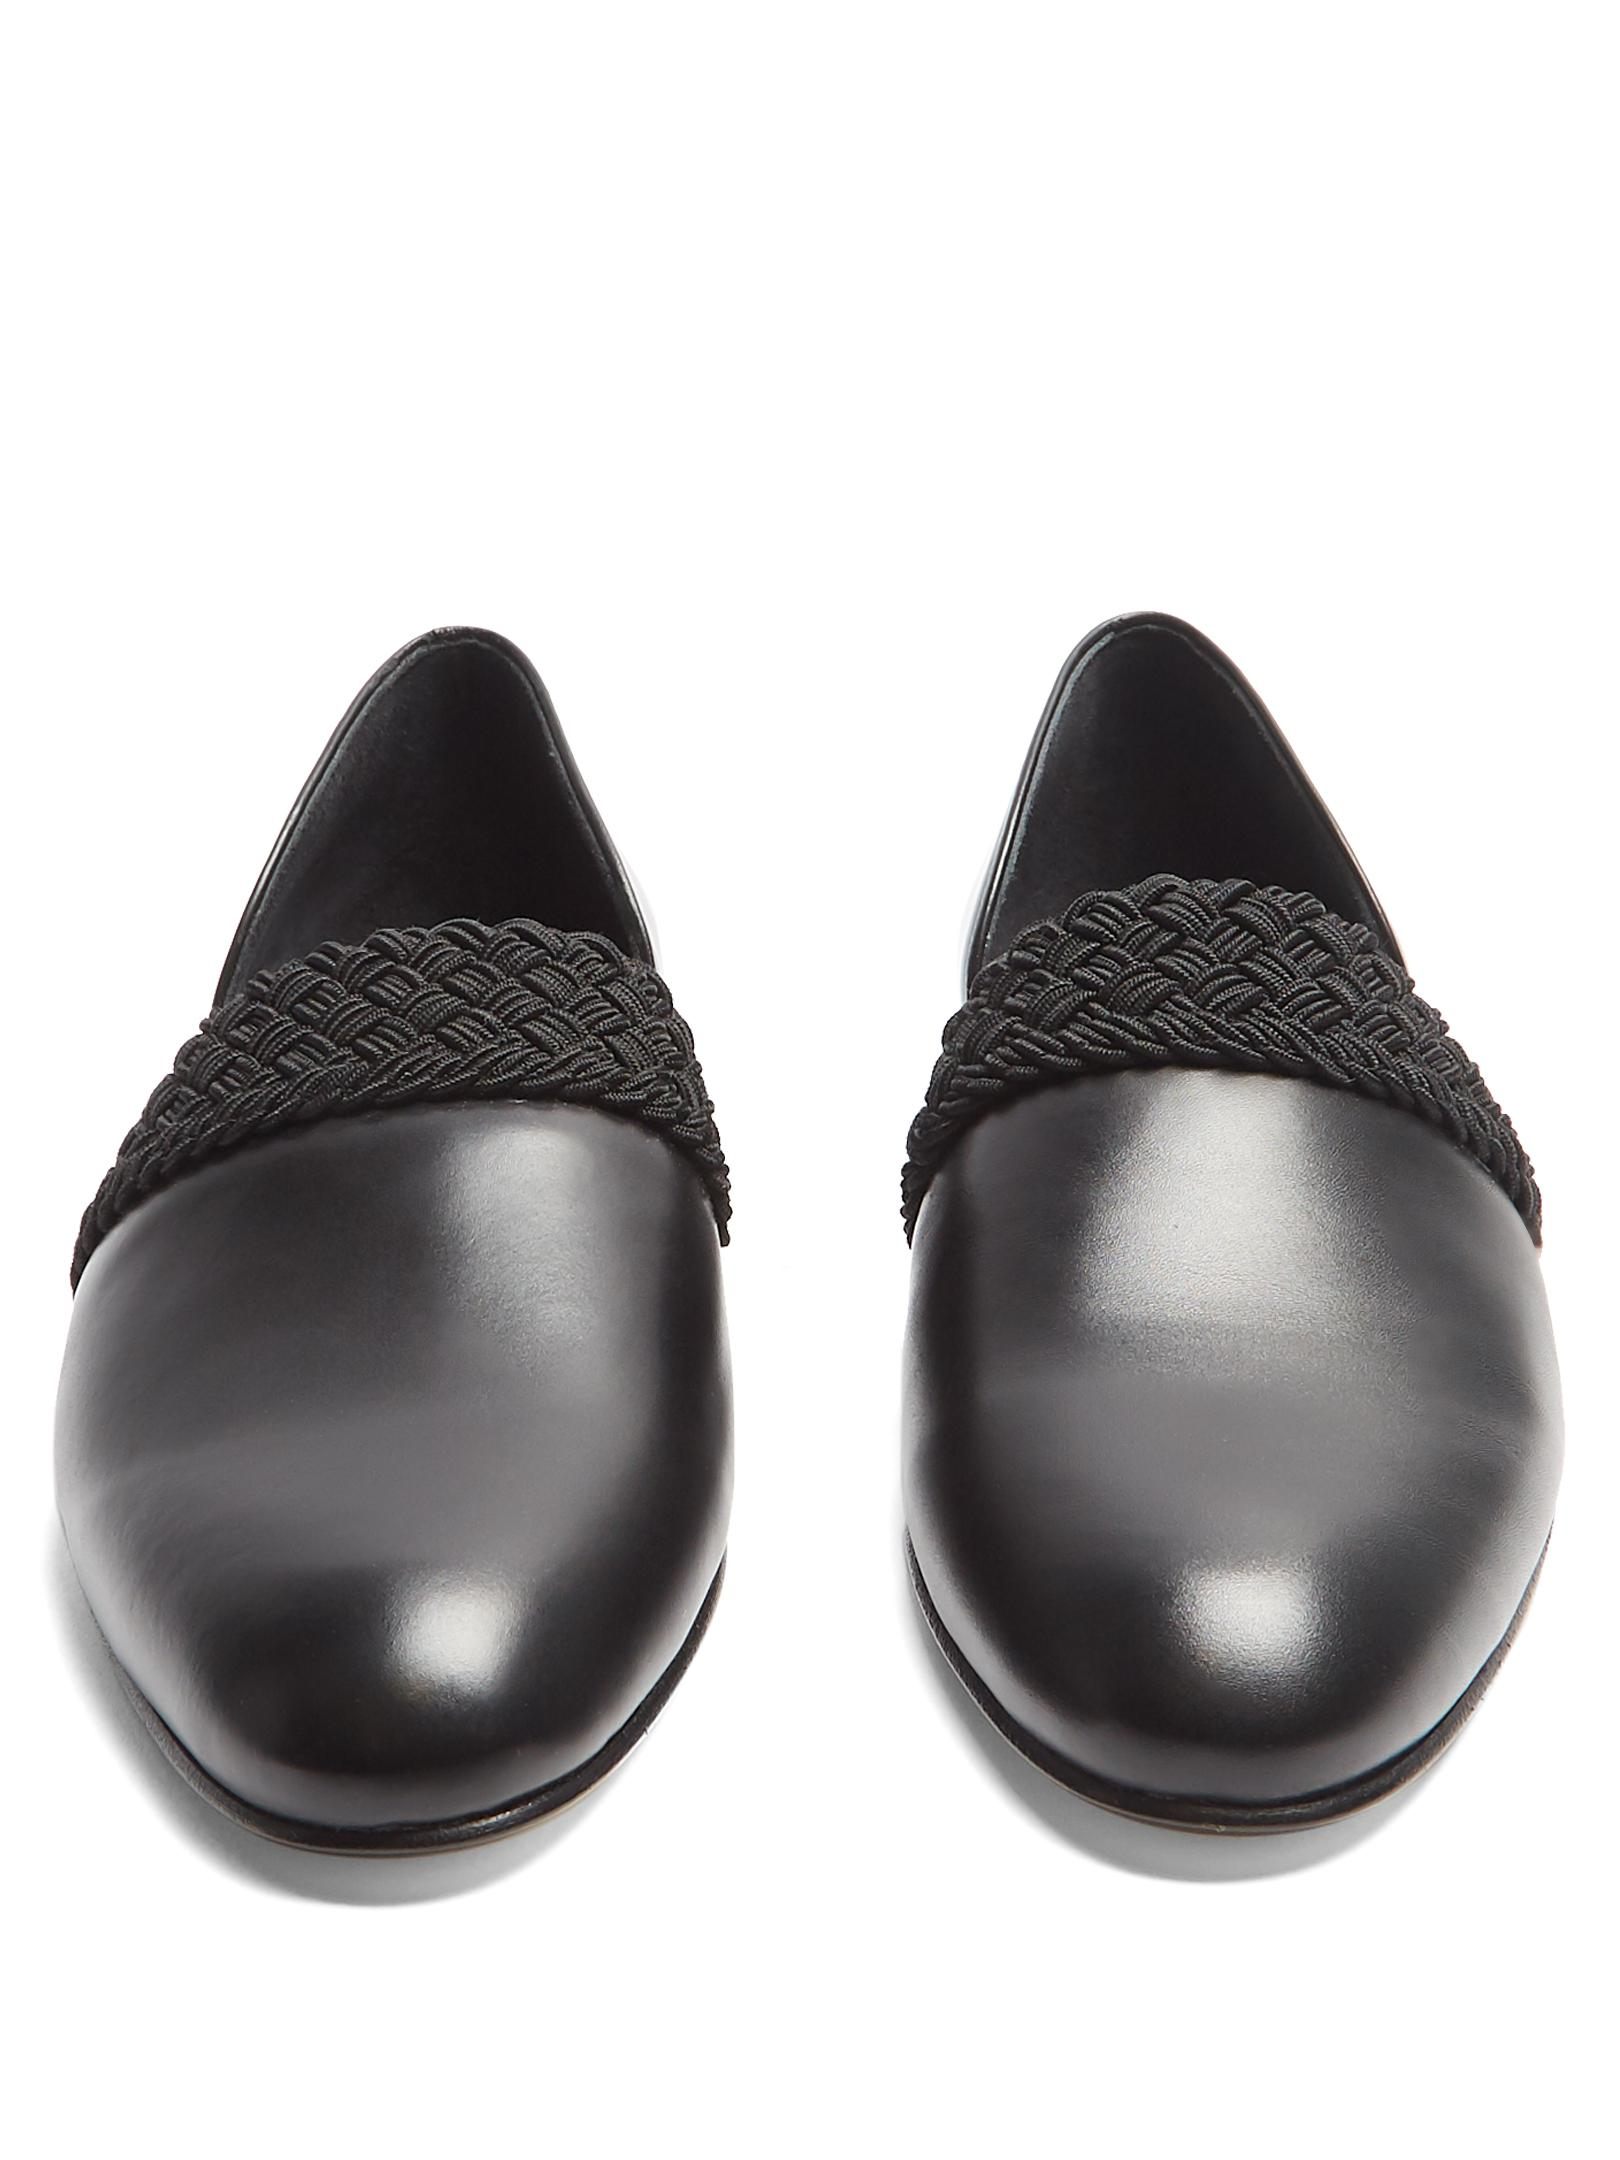 Loewe Leather Cut-out Side Braided-detail Loafers in Black for Men